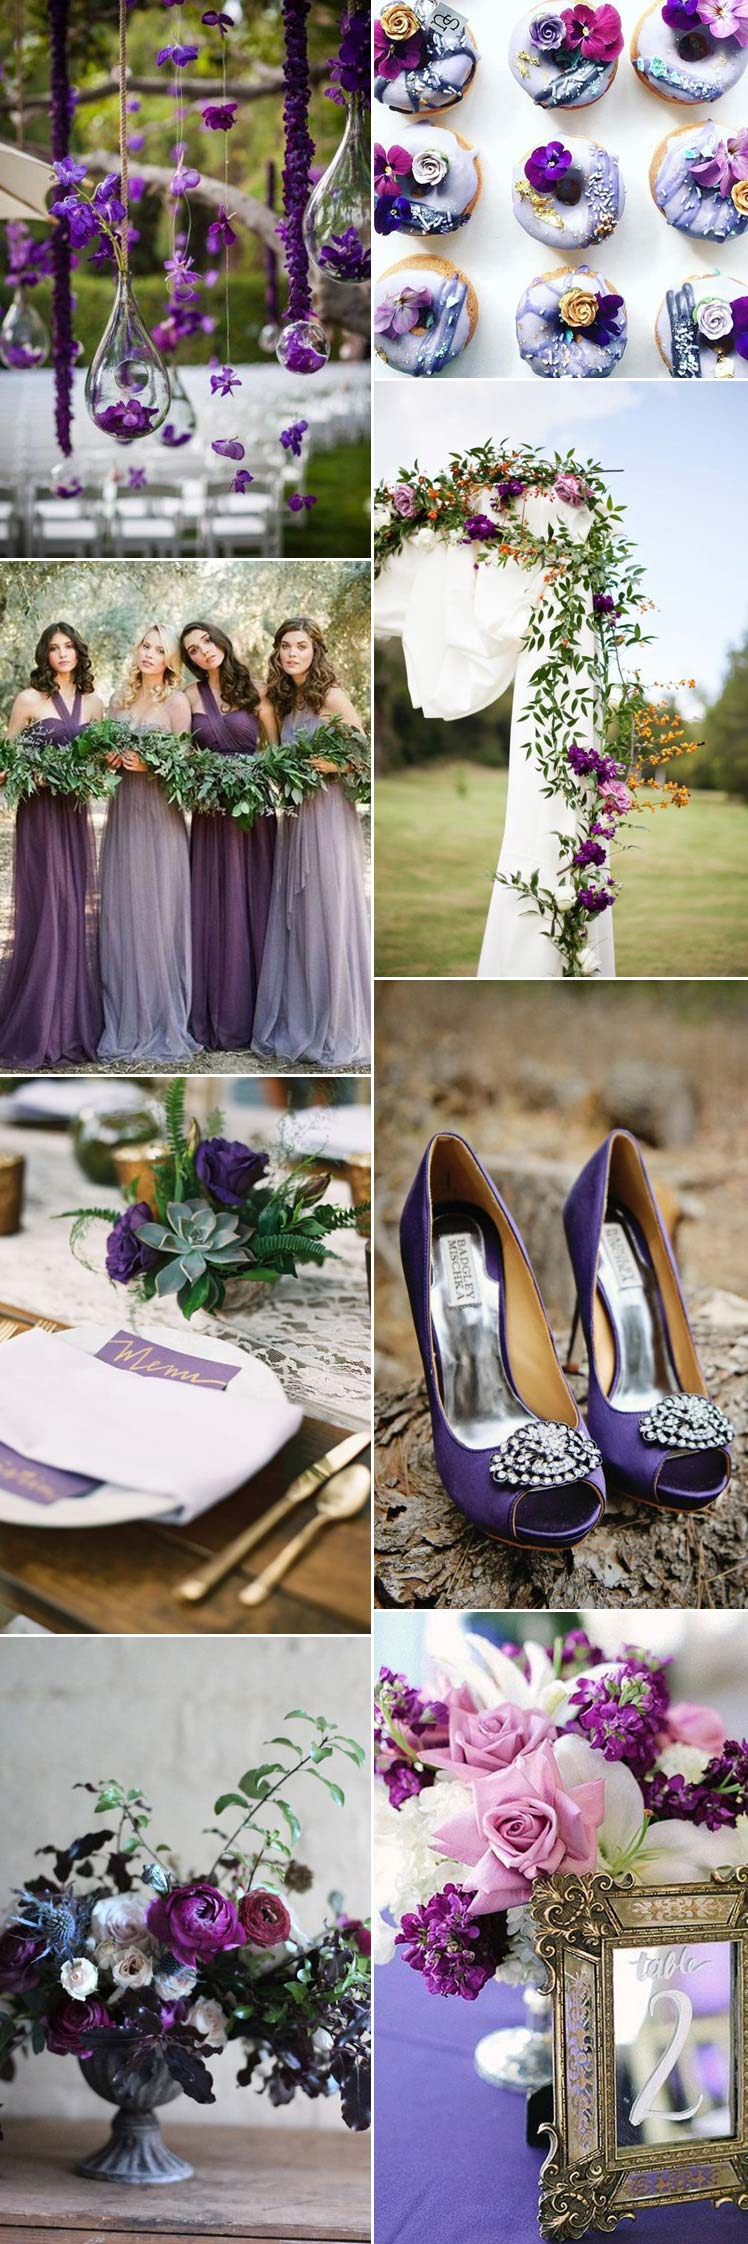 Ultra Violet colour wedding theme inspiration